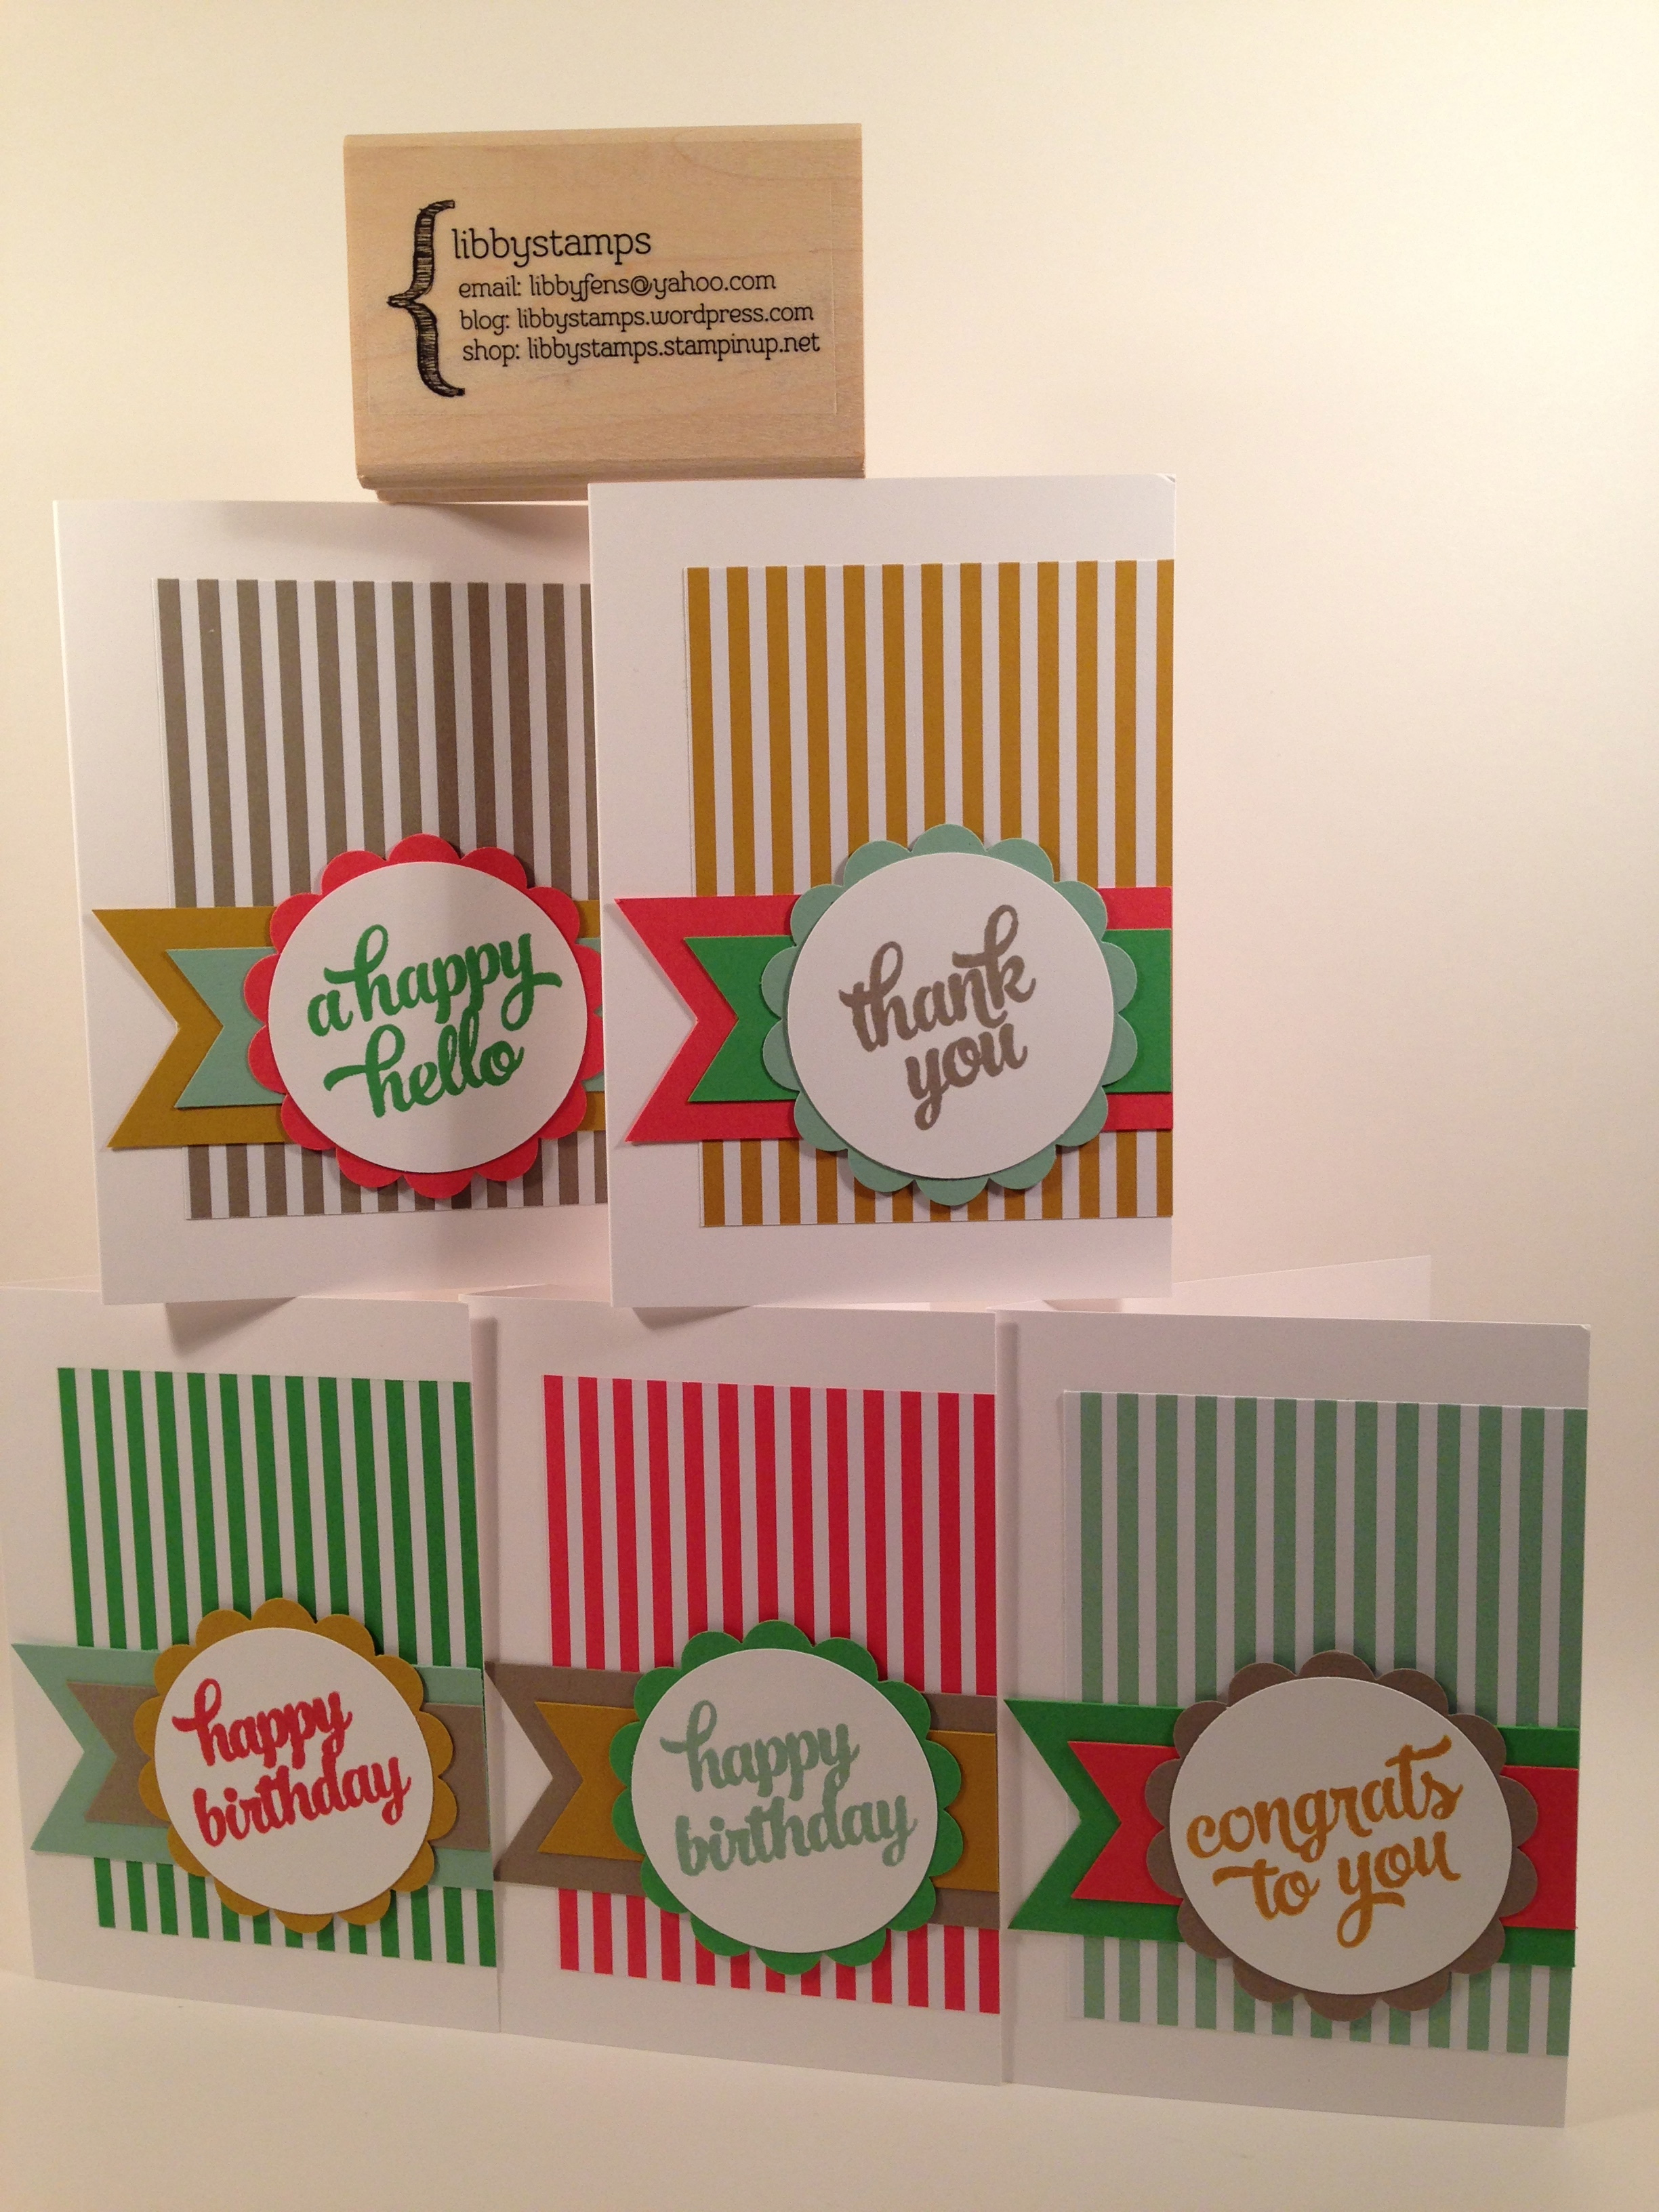 "libbystamps, Stampin' Up, stampinup, Tin of Cards Stamp Set, 2015-2017 In Color Envelope Liner Paper, Banner Triple Punch, 2"" Circle Punch, 2 3/8"" Scallop Circle Punch, Whisper White Note Card & Envelopes, 2015-2017 In Color Paper & Ink Pads"